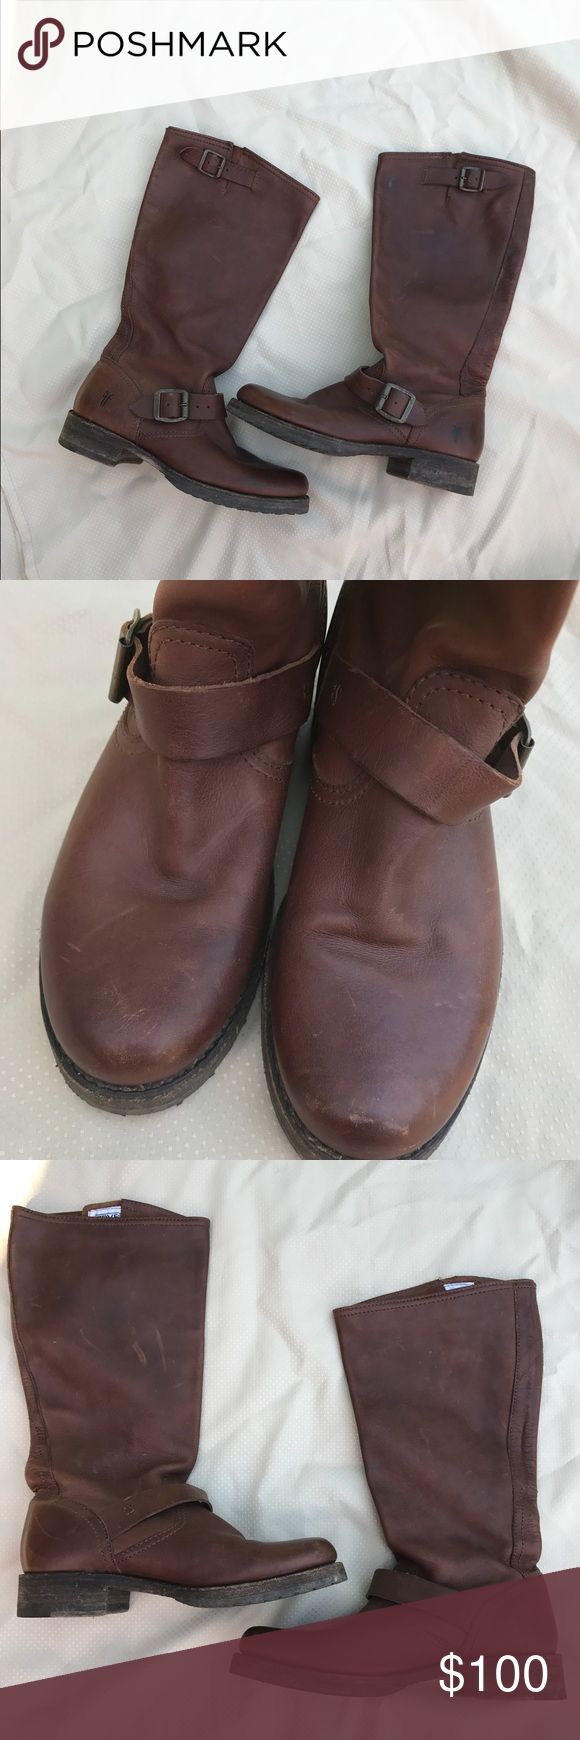 """Frye Veronica Slouch size 7.5 #77605 Frye Veronica Slouch 7.5 #77605. A tough engineer boot with a soft relaxed fit. The calf leather is hand burnished to get better with age. Unlined, leather outsole, rubber foot part. 14"""" shaft height, 14 1/3"""" shaft circumference and 1"""" heel. There are some scuffs on leather giving to the broken in look. Prong on 1 strap is broke but strap still holds in place securely. Please refer to pics. Frye Shoes"""